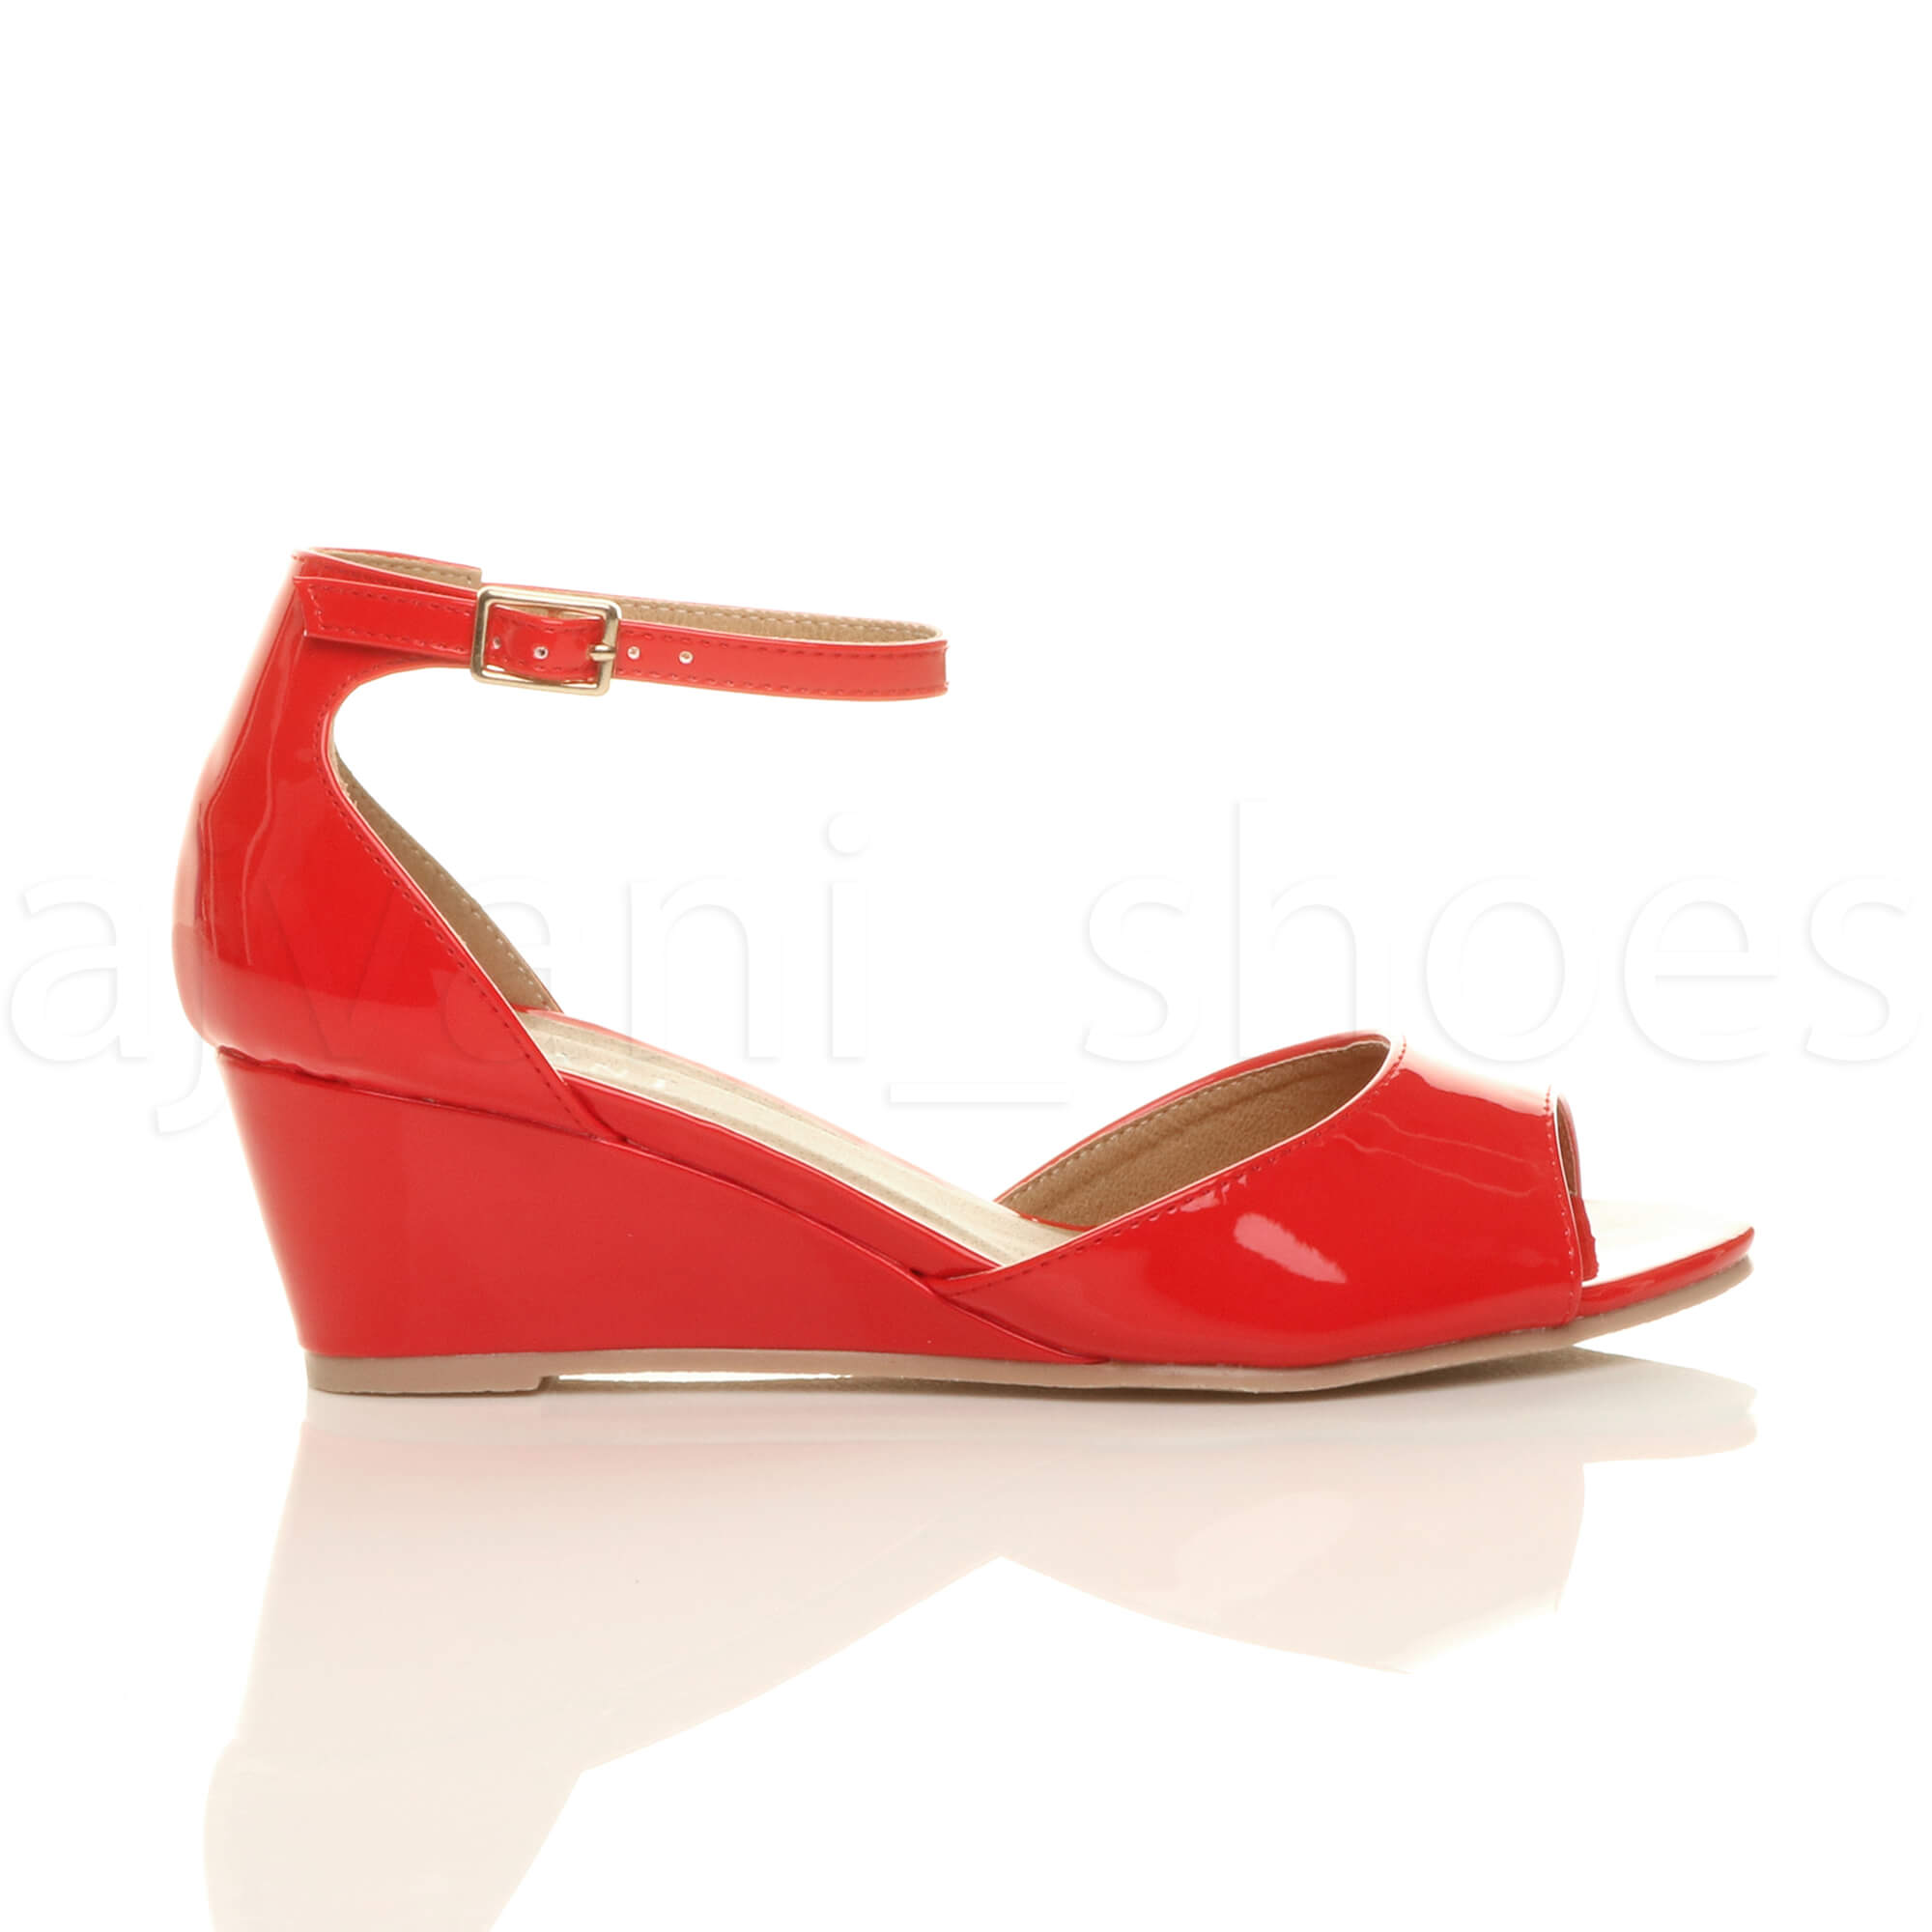 WOMENS-LADIES-LOW-MID-WEDGE-HEEL-ANKLE-STRAP-SMART-CASUAL-EVENING-SANDALS-SIZE thumbnail 115